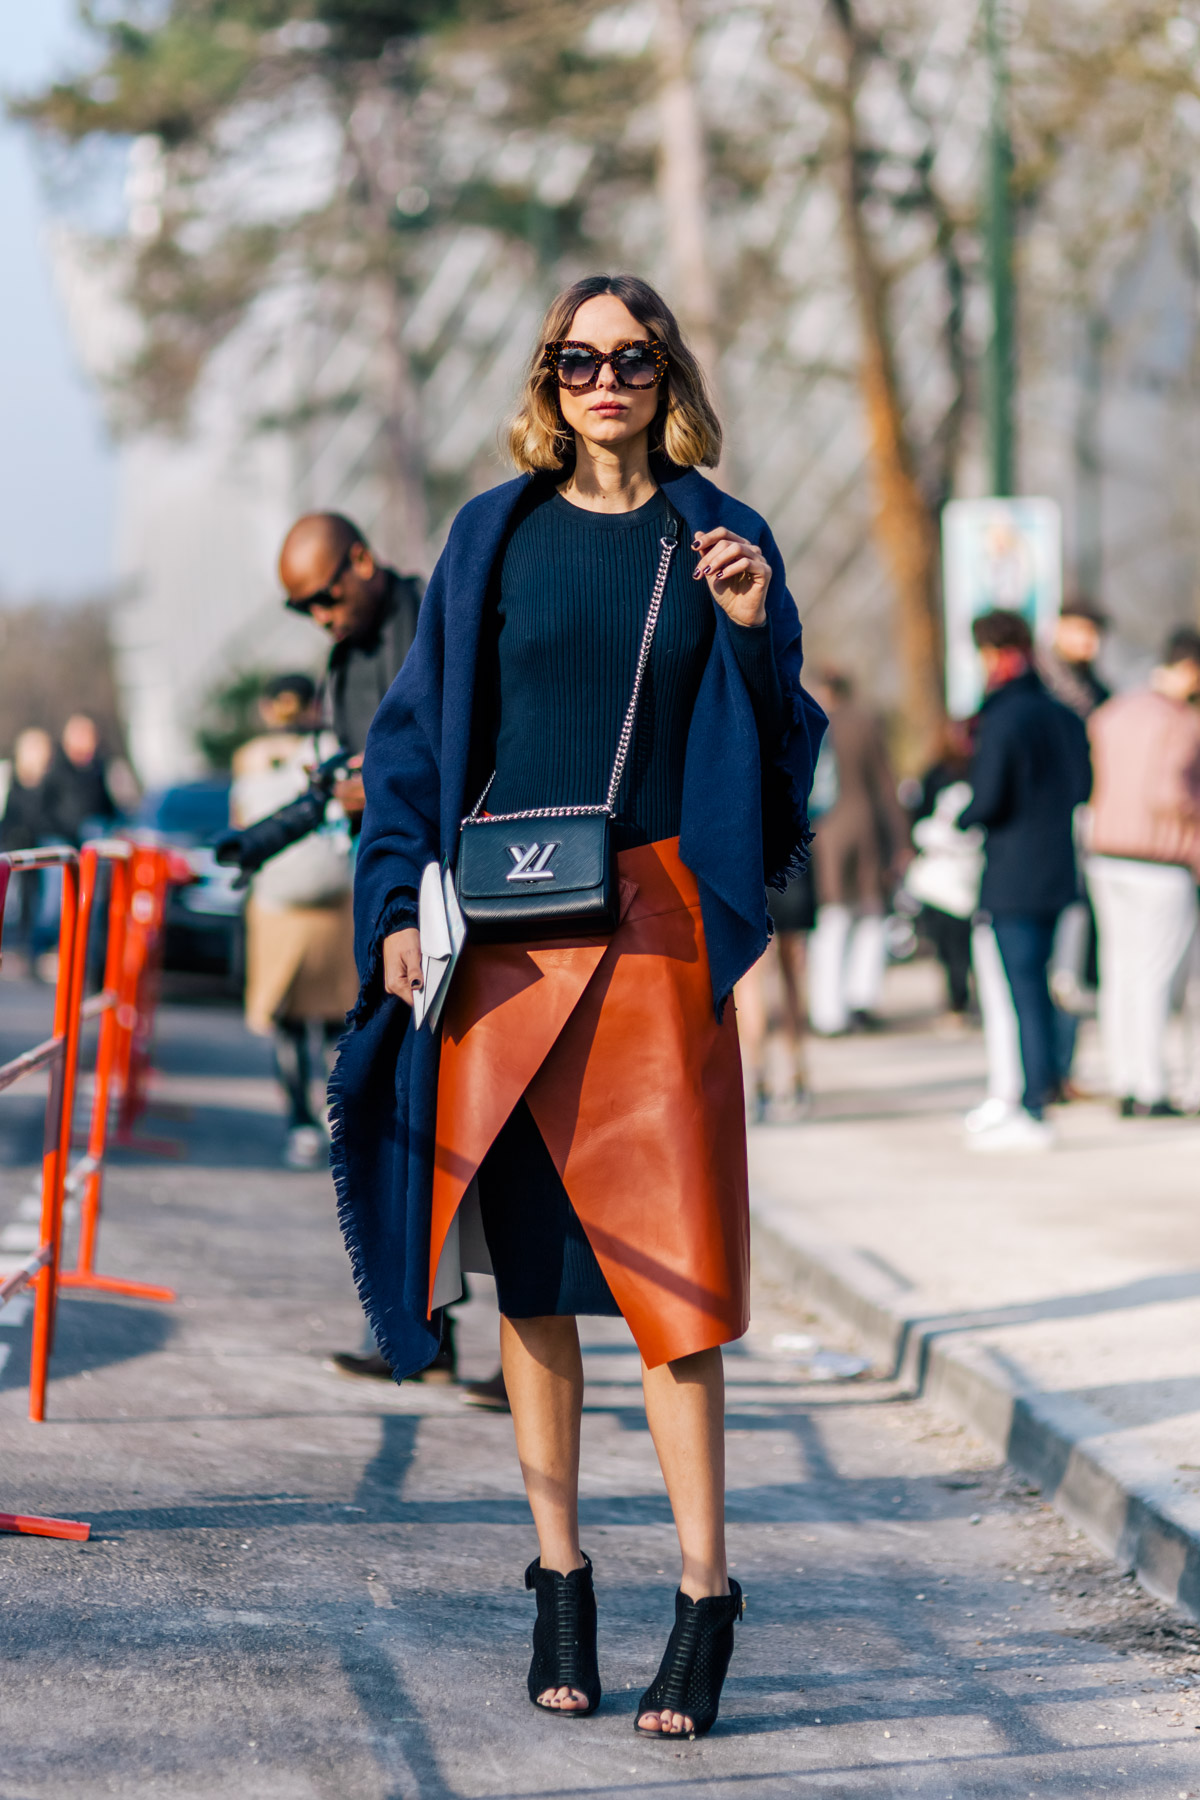 25 Best Street Style Fashion Trends 2016 For Fall Winter